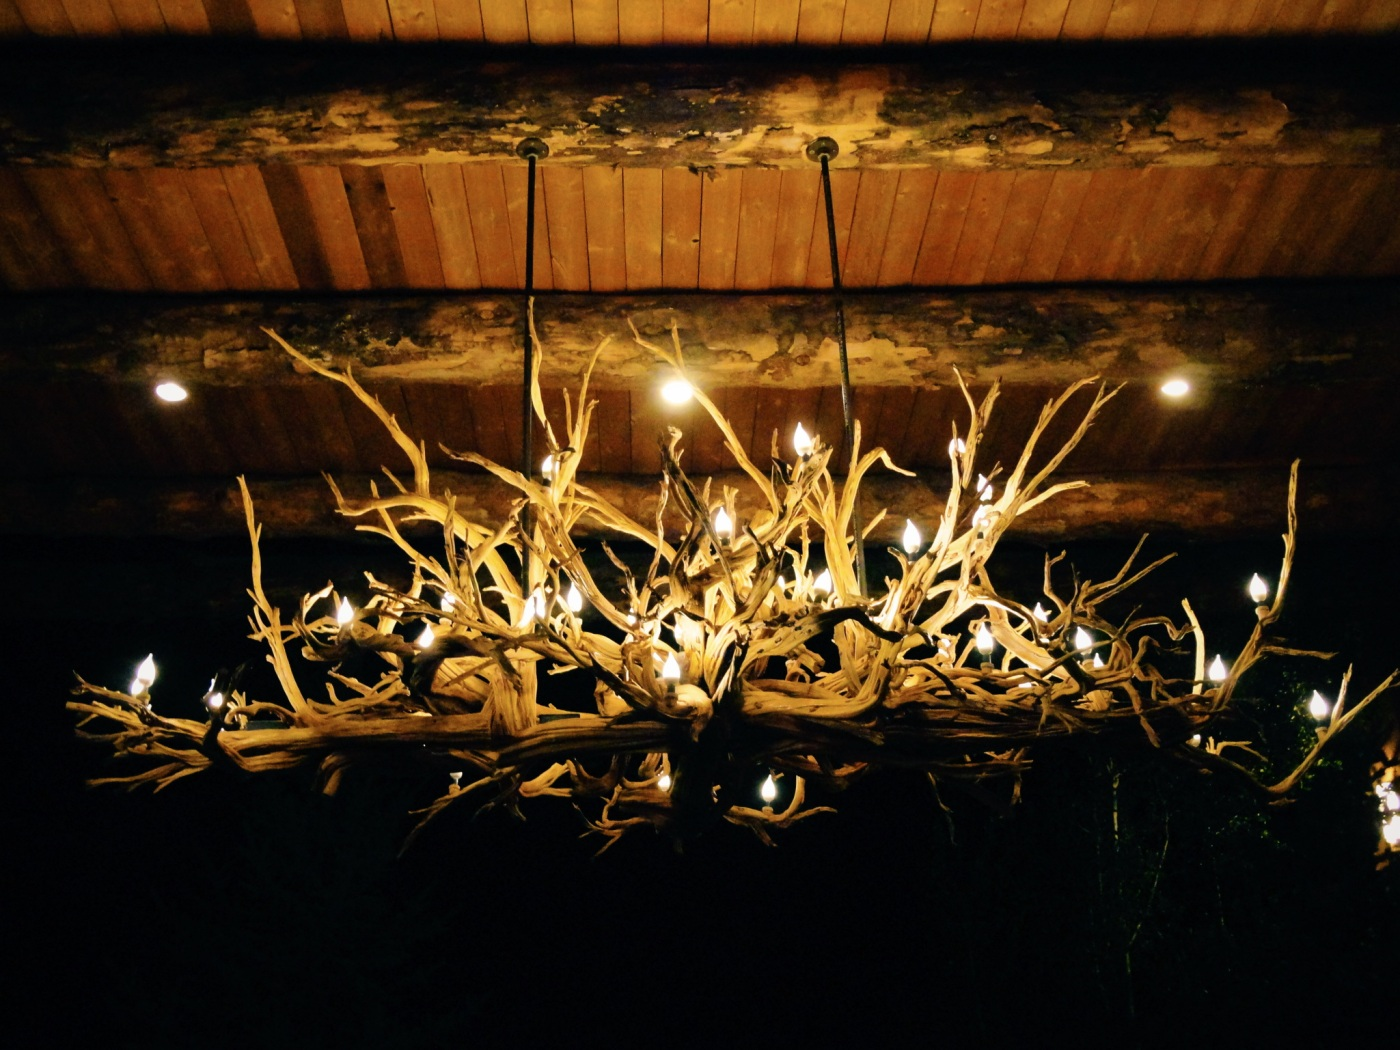 Wooden chandelier at El Monte Sagrado in Taos, New Mexico